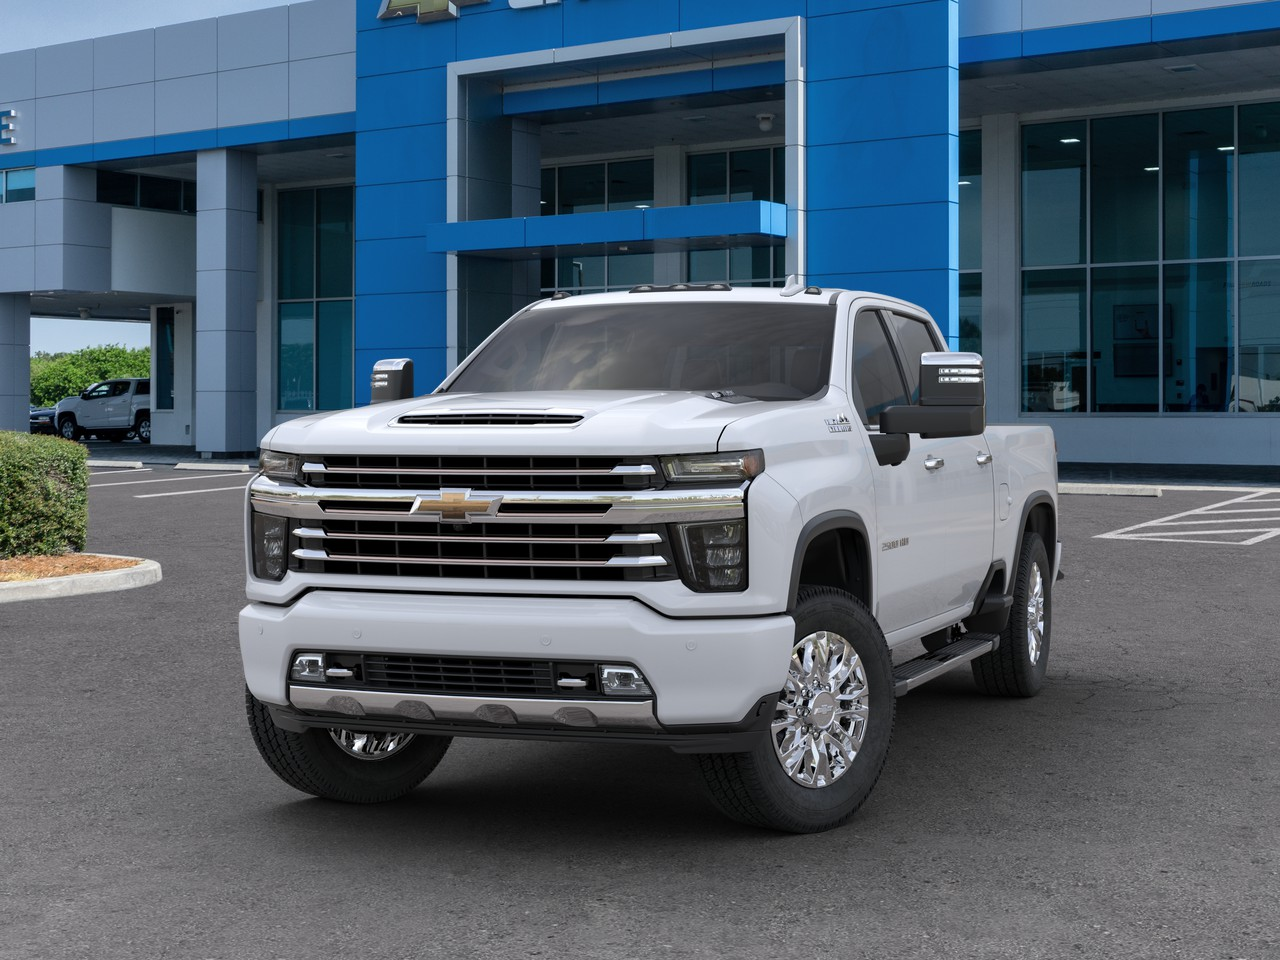 New 2020 Chevrolet Silverado 2500 HD High Country FOUR WHEEL DRIVE Crew Cab